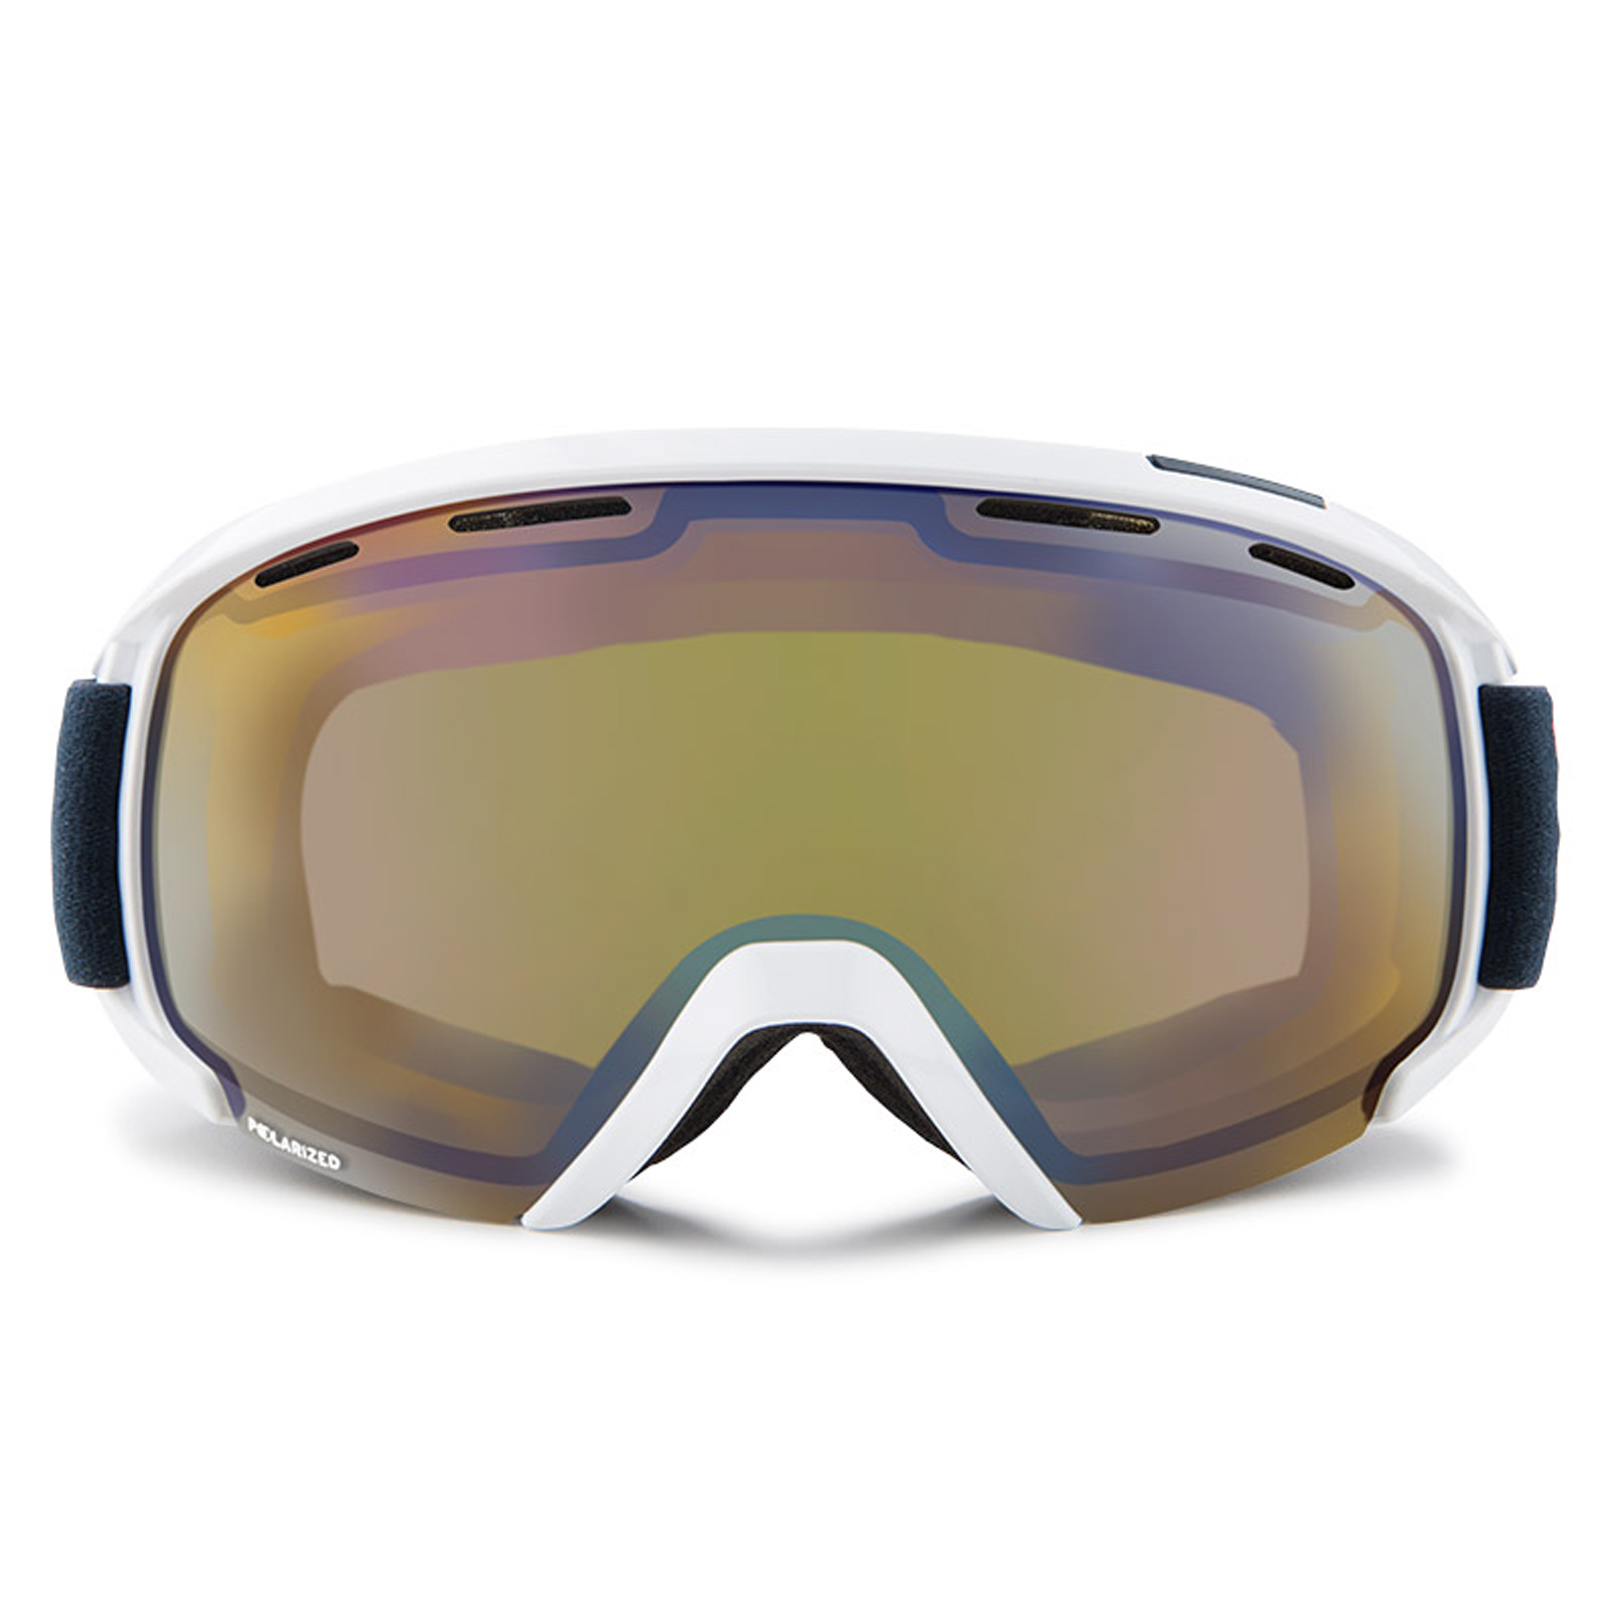 ski snowboard goggles  Zeal Optics Slate Snow Goggles Ski Snowboard Snowmobile Winter Eye ...